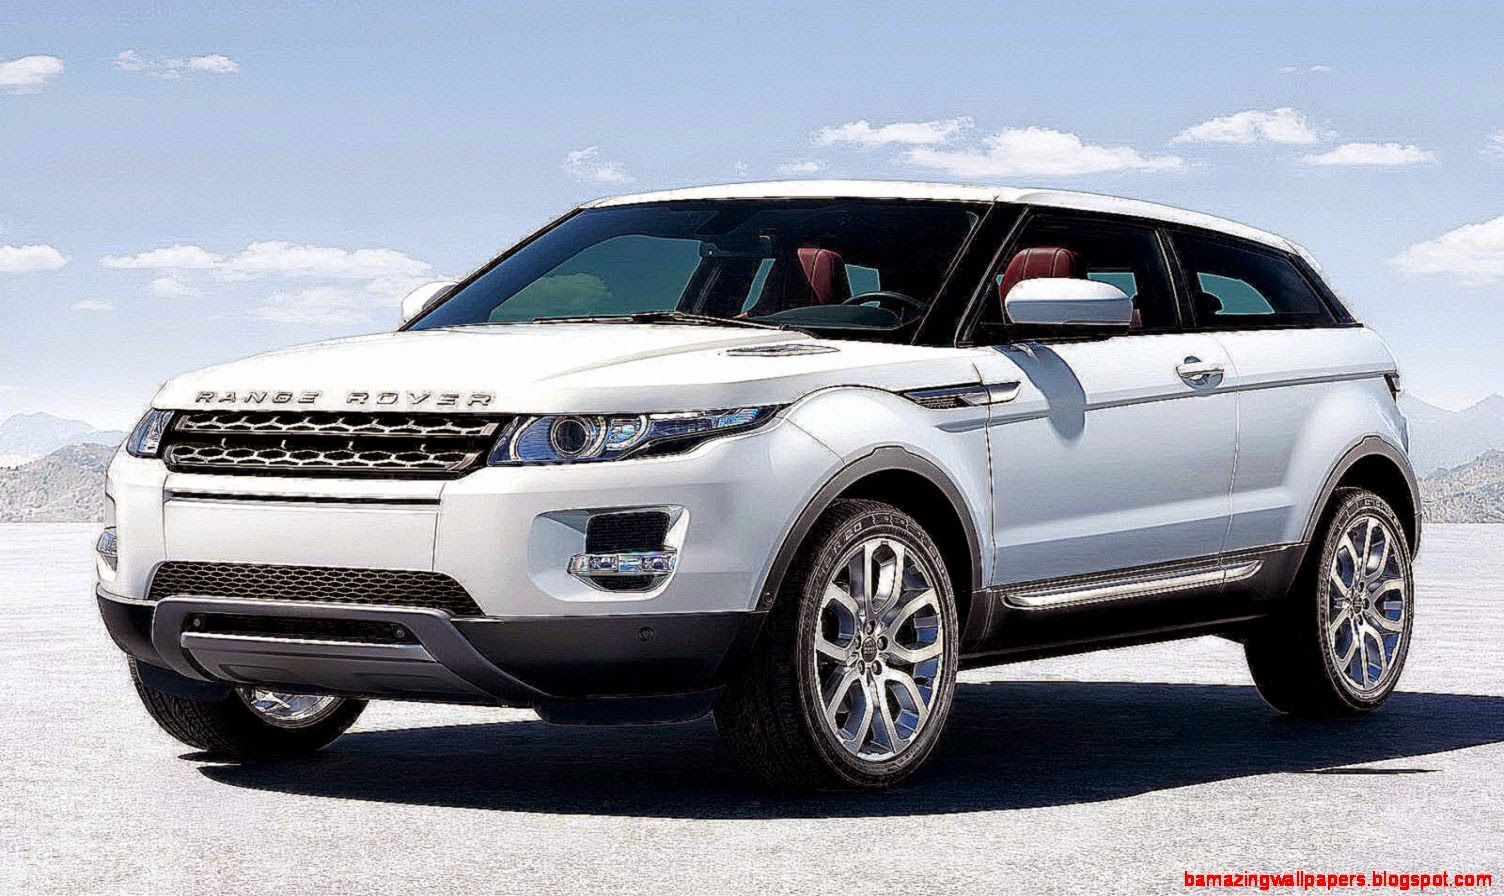 Best Range Rover Range Rover Gas Mileage Amazing Wallpapers